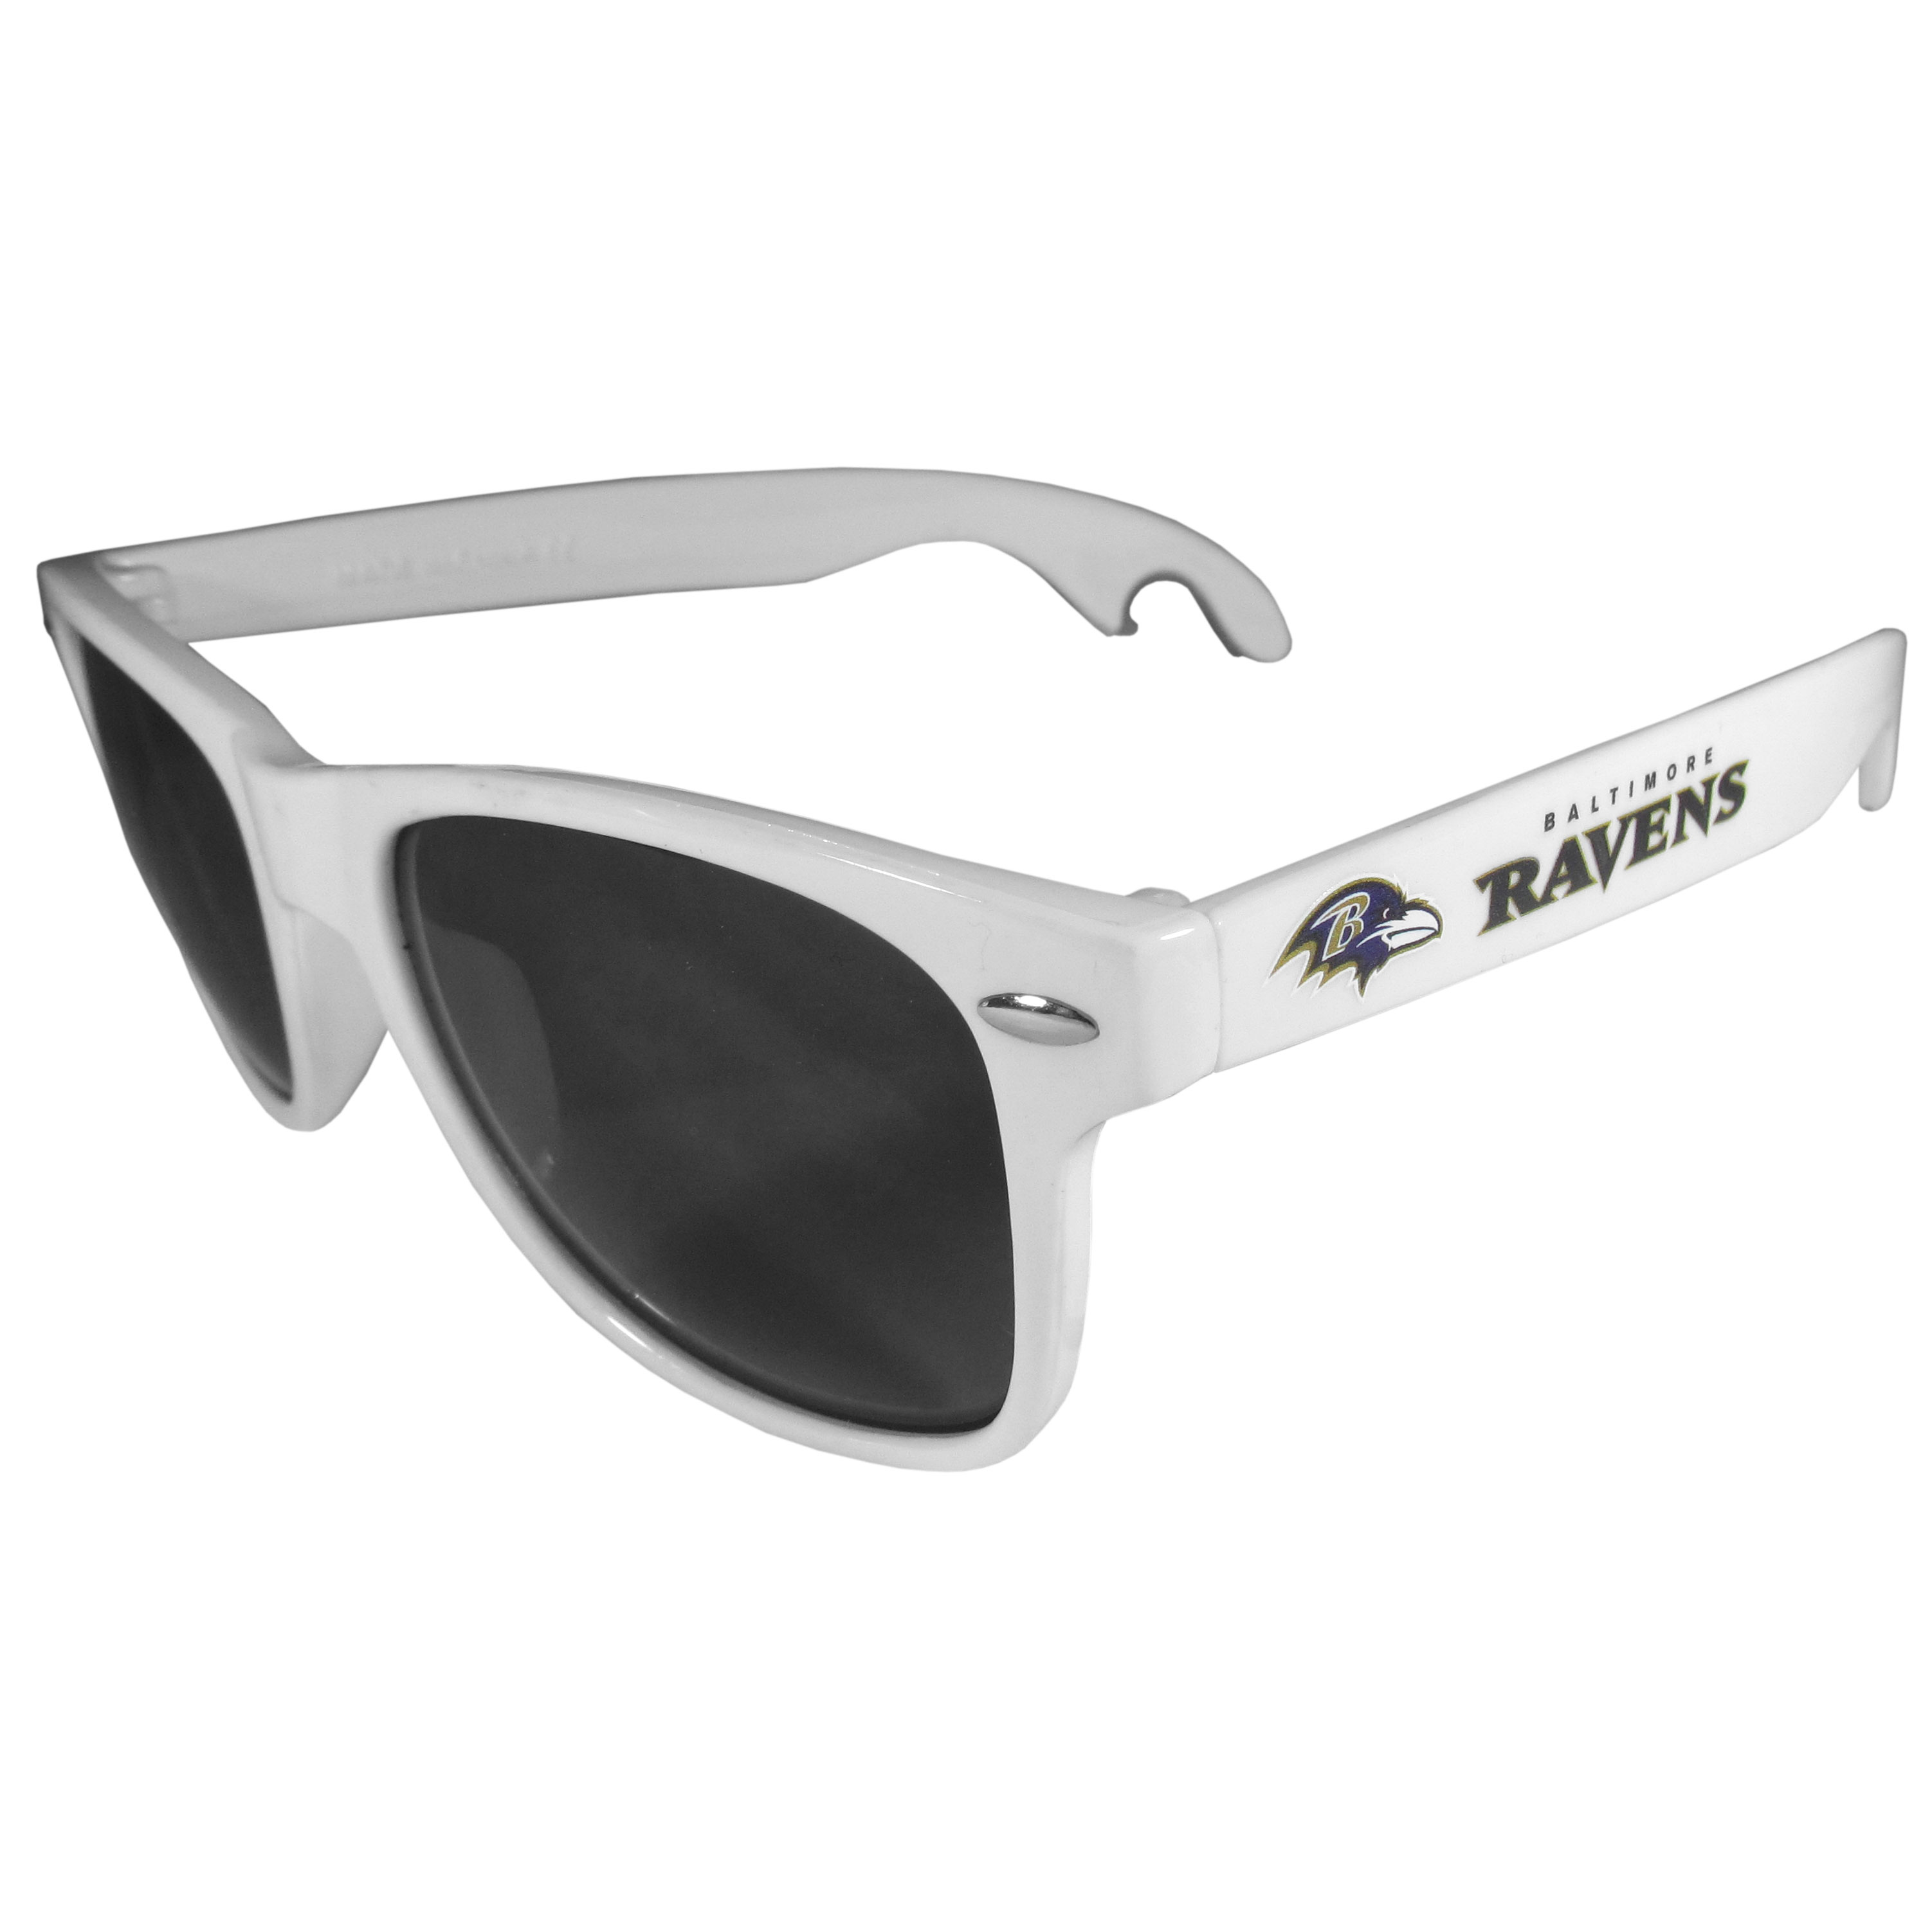 Baltimore Ravens Beachfarer Bottle Opener Sunglasses, White - Seriously, these sunglasses open bottles! Keep the party going with these amazing Baltimore Ravens bottle opener sunglasses. The stylish retro frames feature team designs on the arms and functional bottle openers on the end of the arms. Whether you are at the beach or having a backyard BBQ on game day, these shades will keep your eyes protected with 100% UVA/UVB protection and keep you hydrated with the handy bottle opener arms.